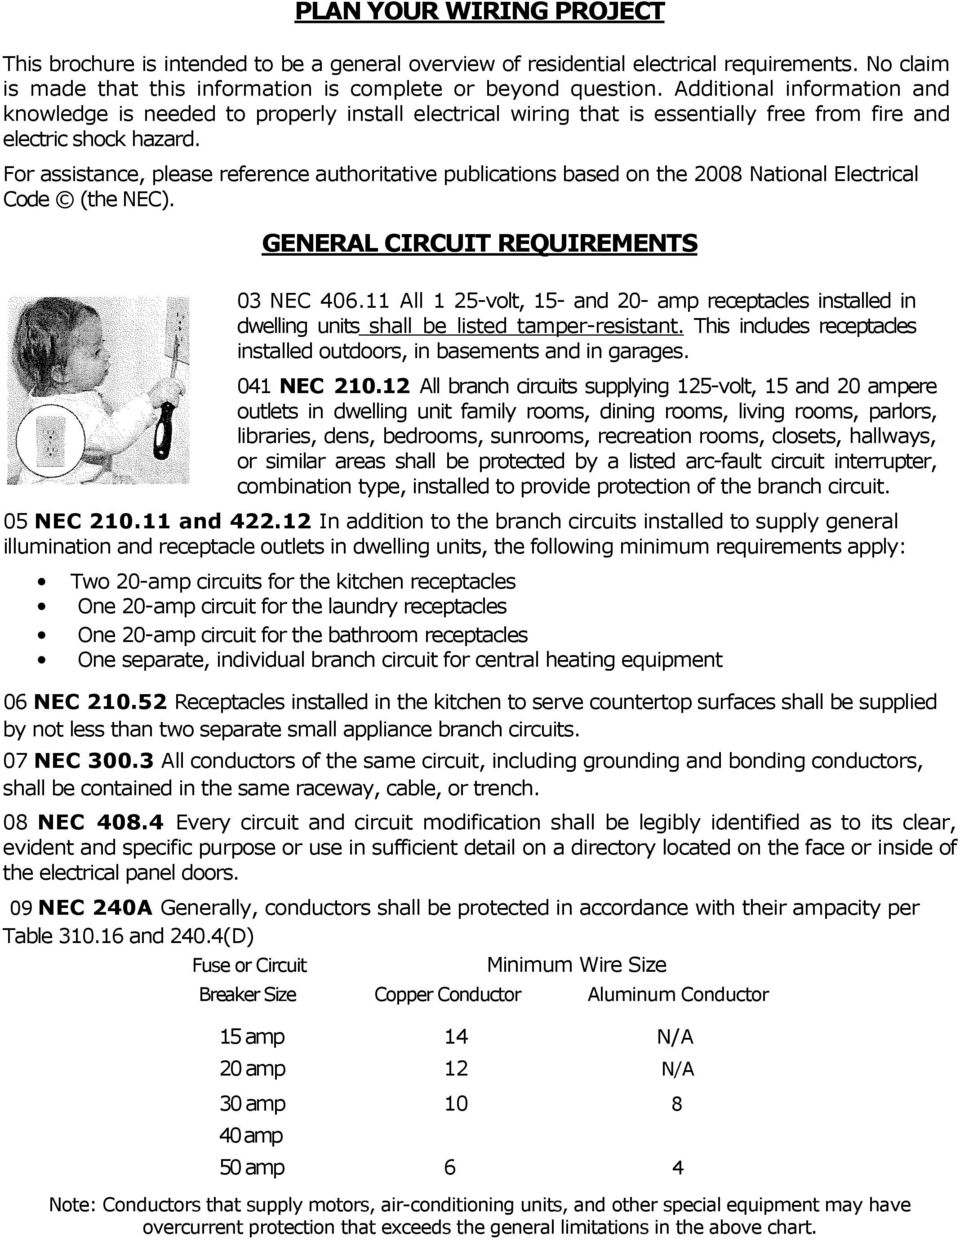 Residential Electrical Inspection Checklist Pdf Garage Circuit Wiring When Installing In For Assistance Please Reference Authoritative Publications Based On The 2008 National Code